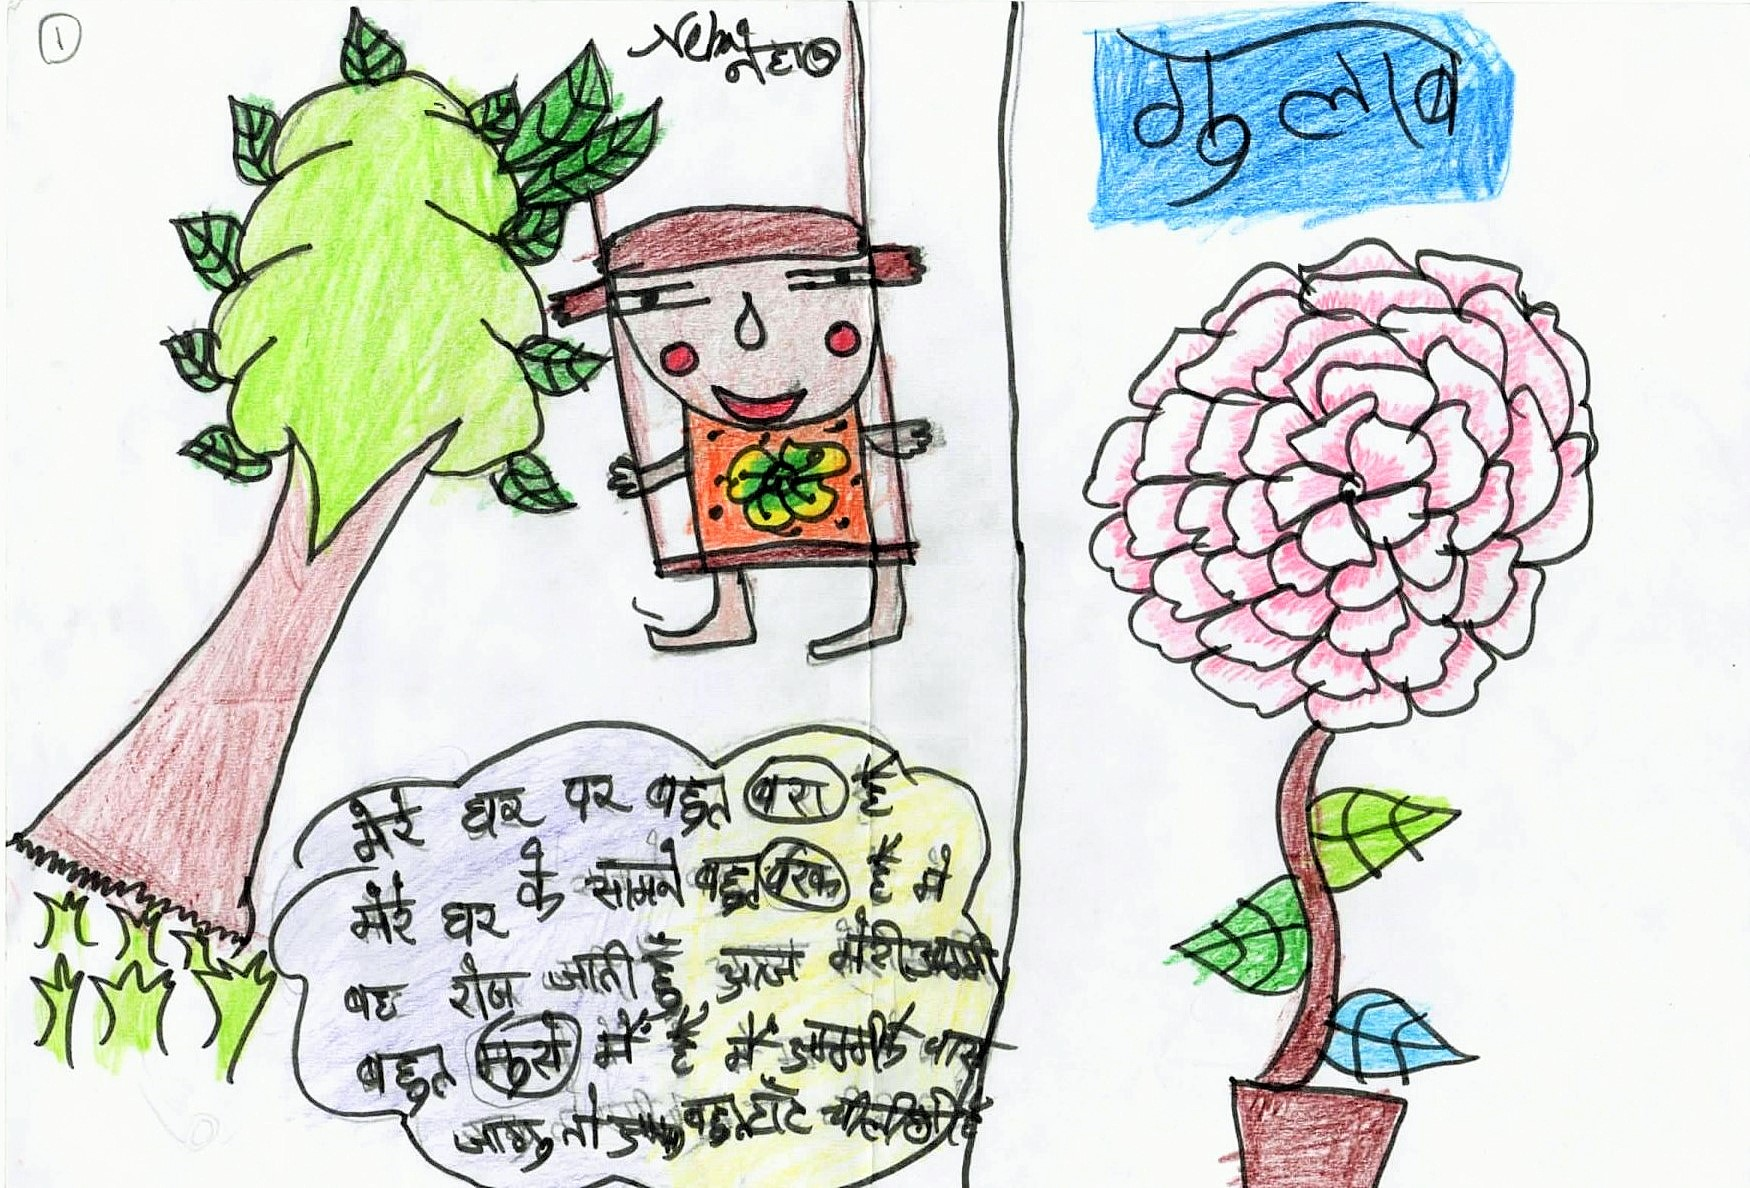 Dilshad_Garden_children_s_drawings_scanned-page-020.jpg